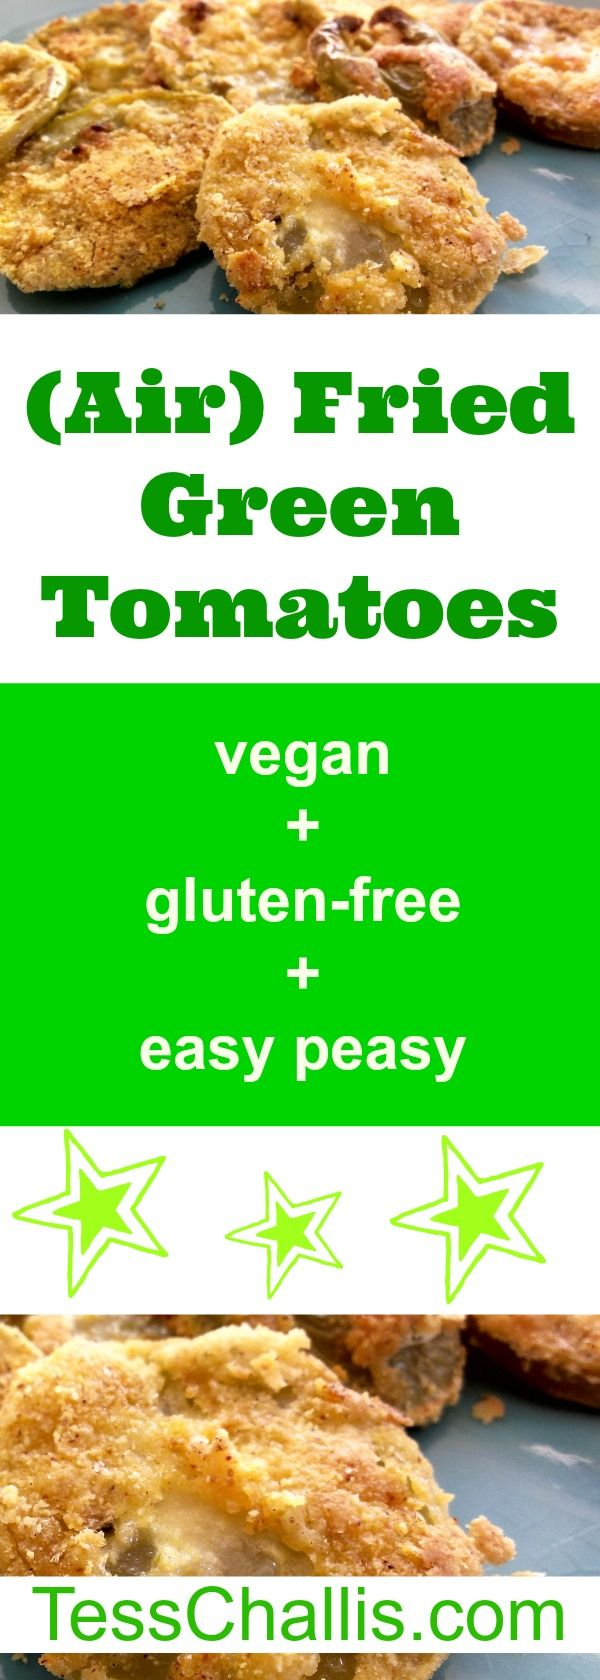 (Air) Fried Green Tomatoes – so tart, crunchy, delicious, and juicy! http://tesschallis.com/recipes/2017/6/17/air-fried-green-tomatoes   #airfryer #vegan #glutenfree #vegrockstar